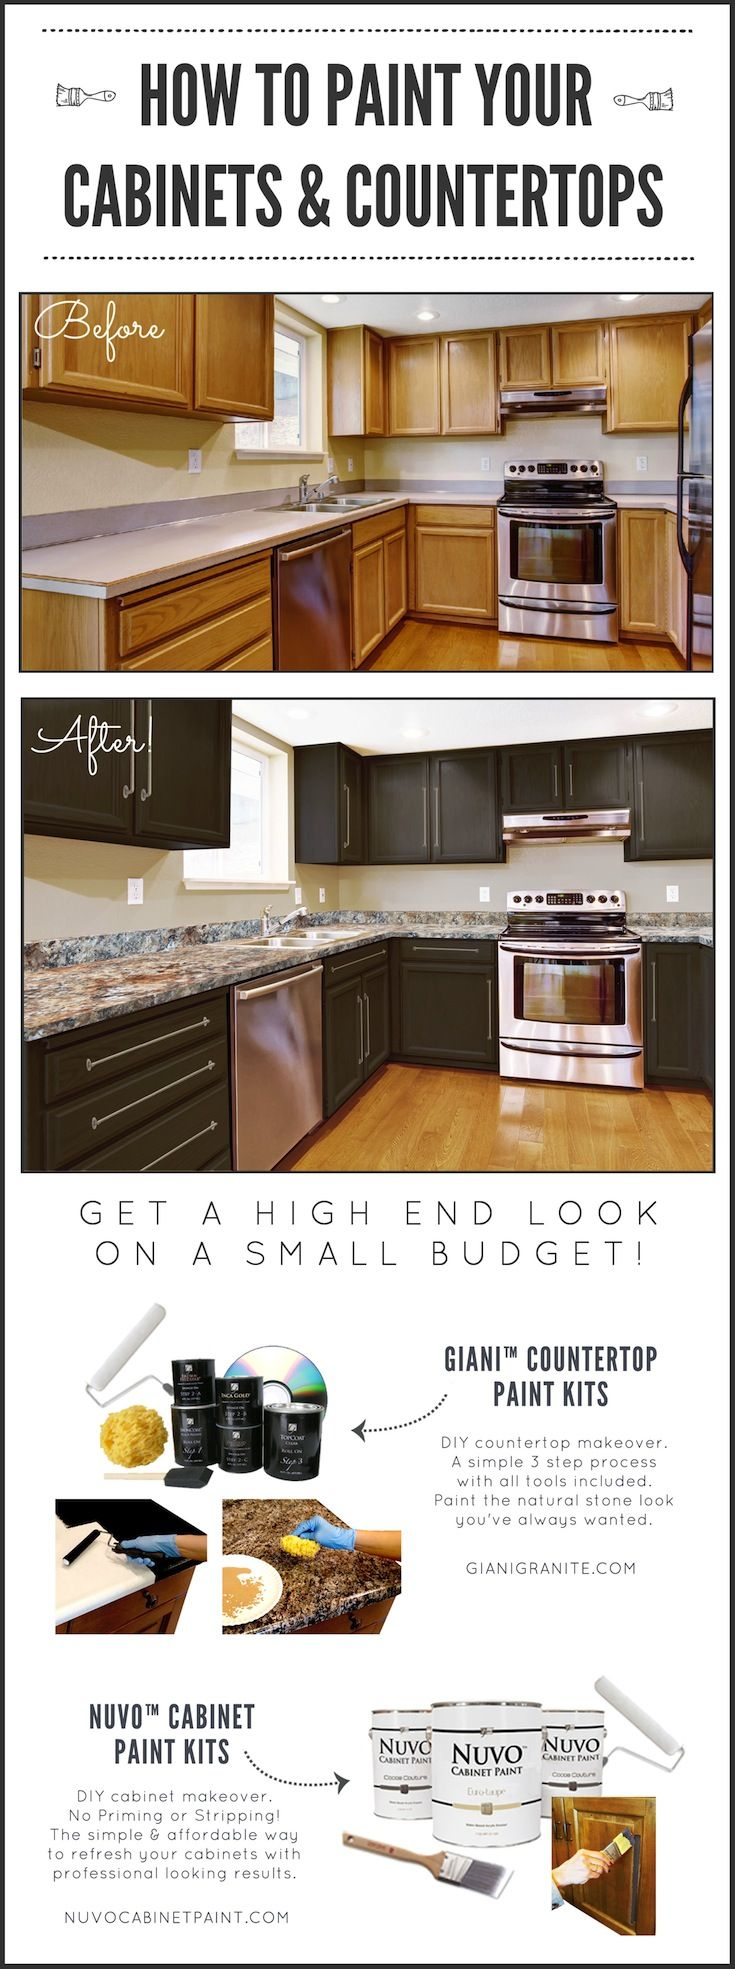 Diy Kitchen Makeover On A Budget Before And After Giani Granite Countertop Paint Kits Transform Existing Co Kitchen Diy Makeover Diy Kitchen Kitchen Makeover